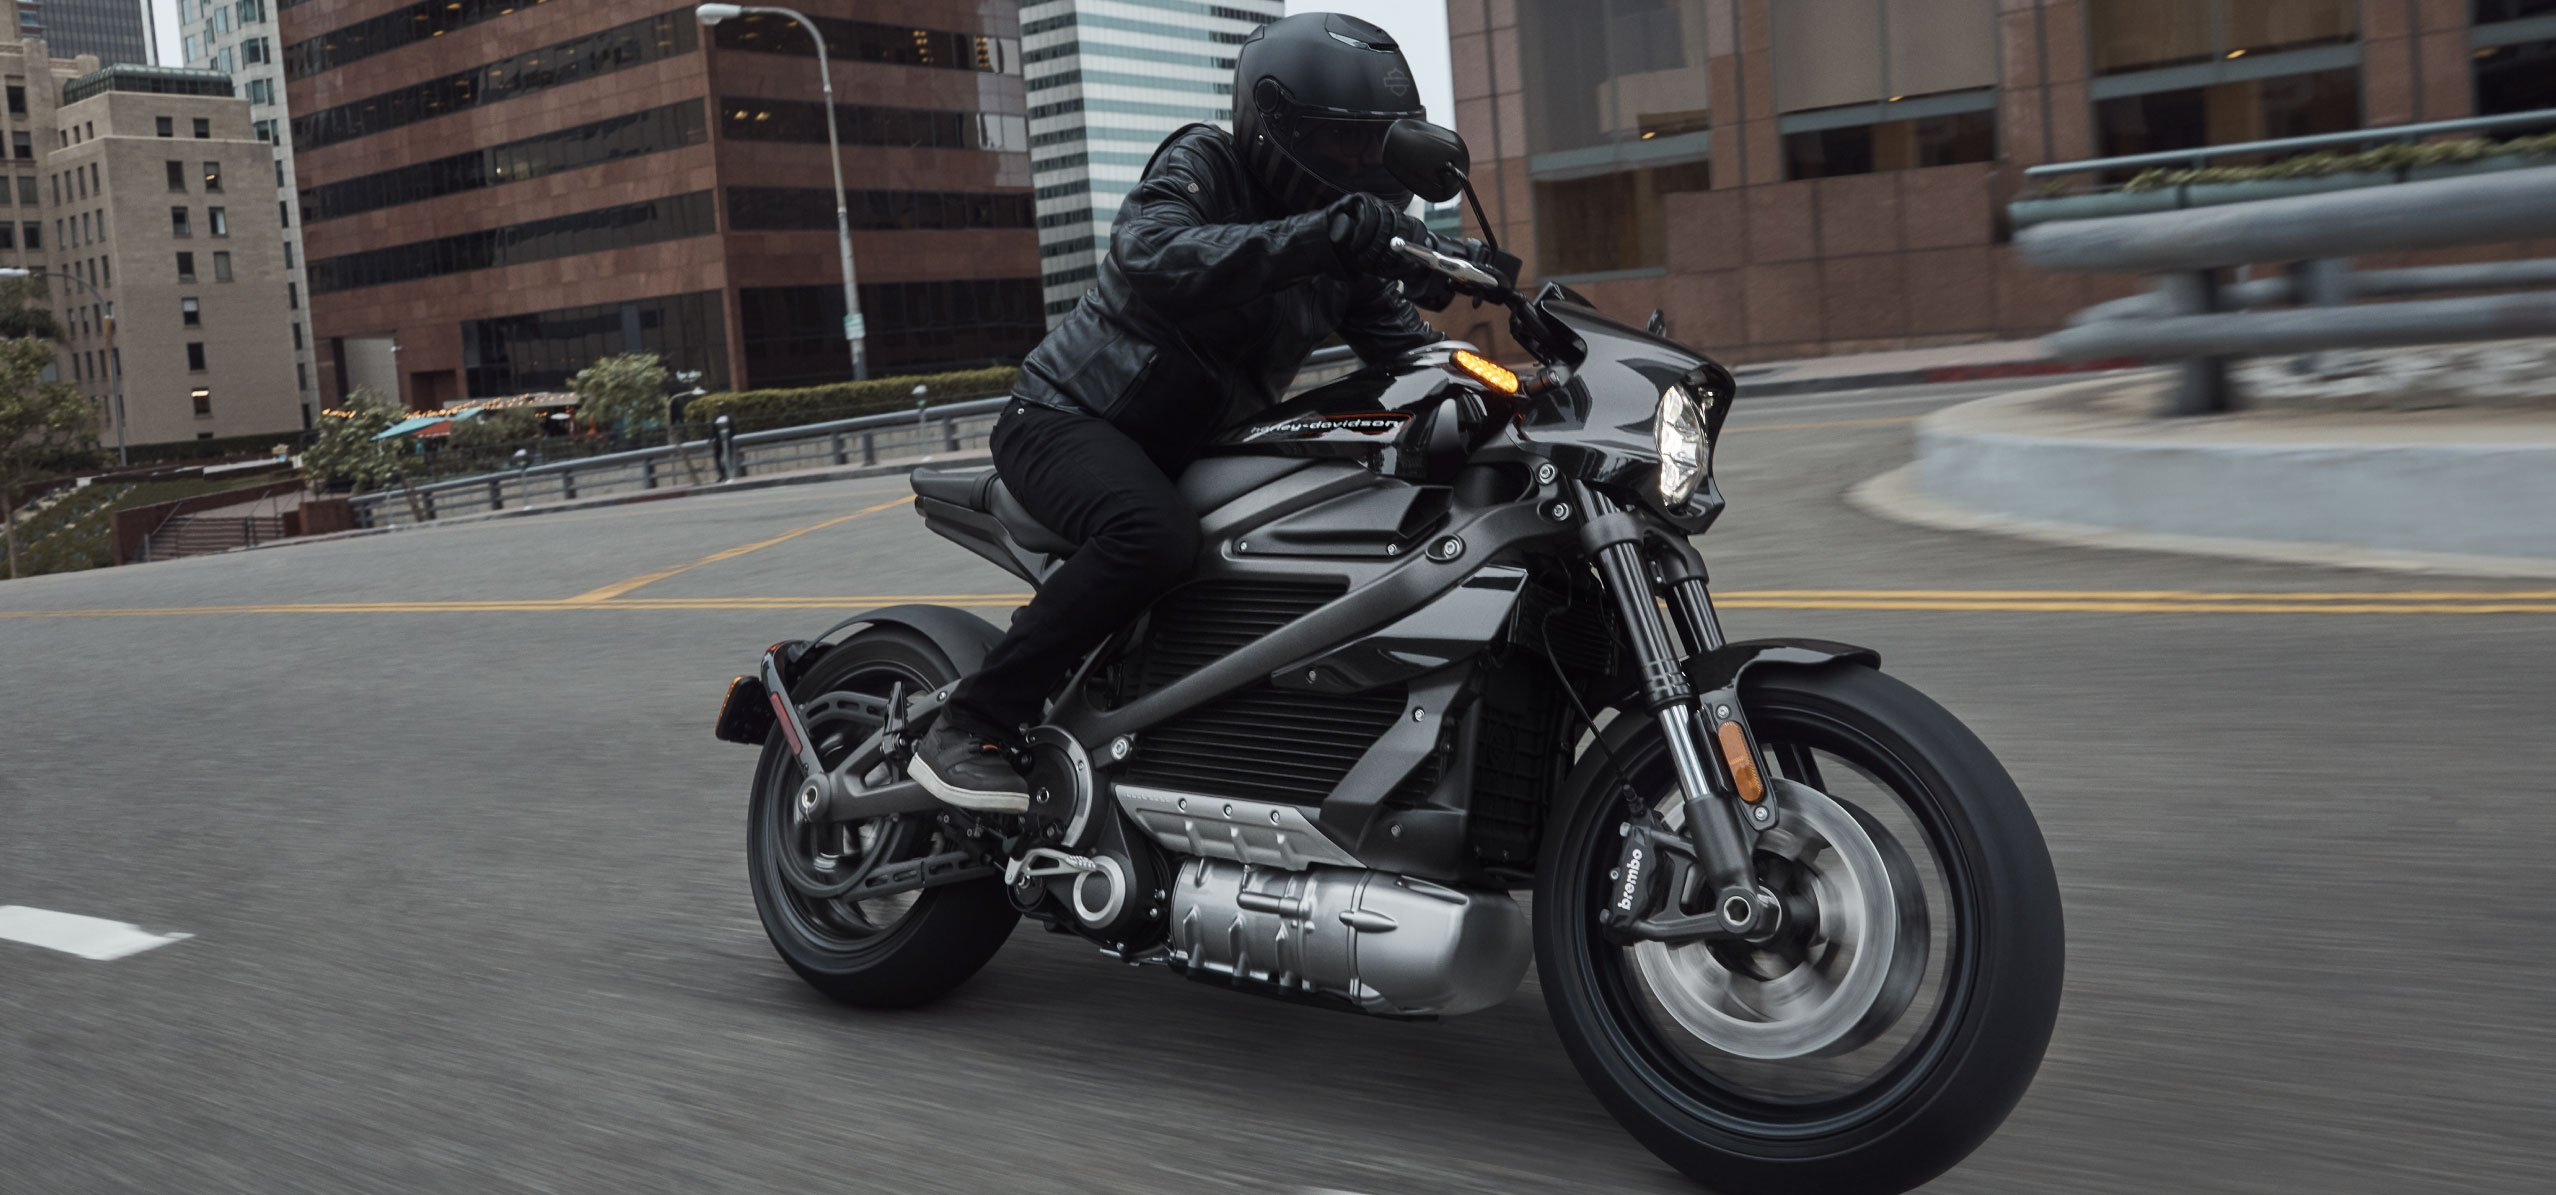 Harley-Davidson Livewire Truck Tour Comes to Guildford